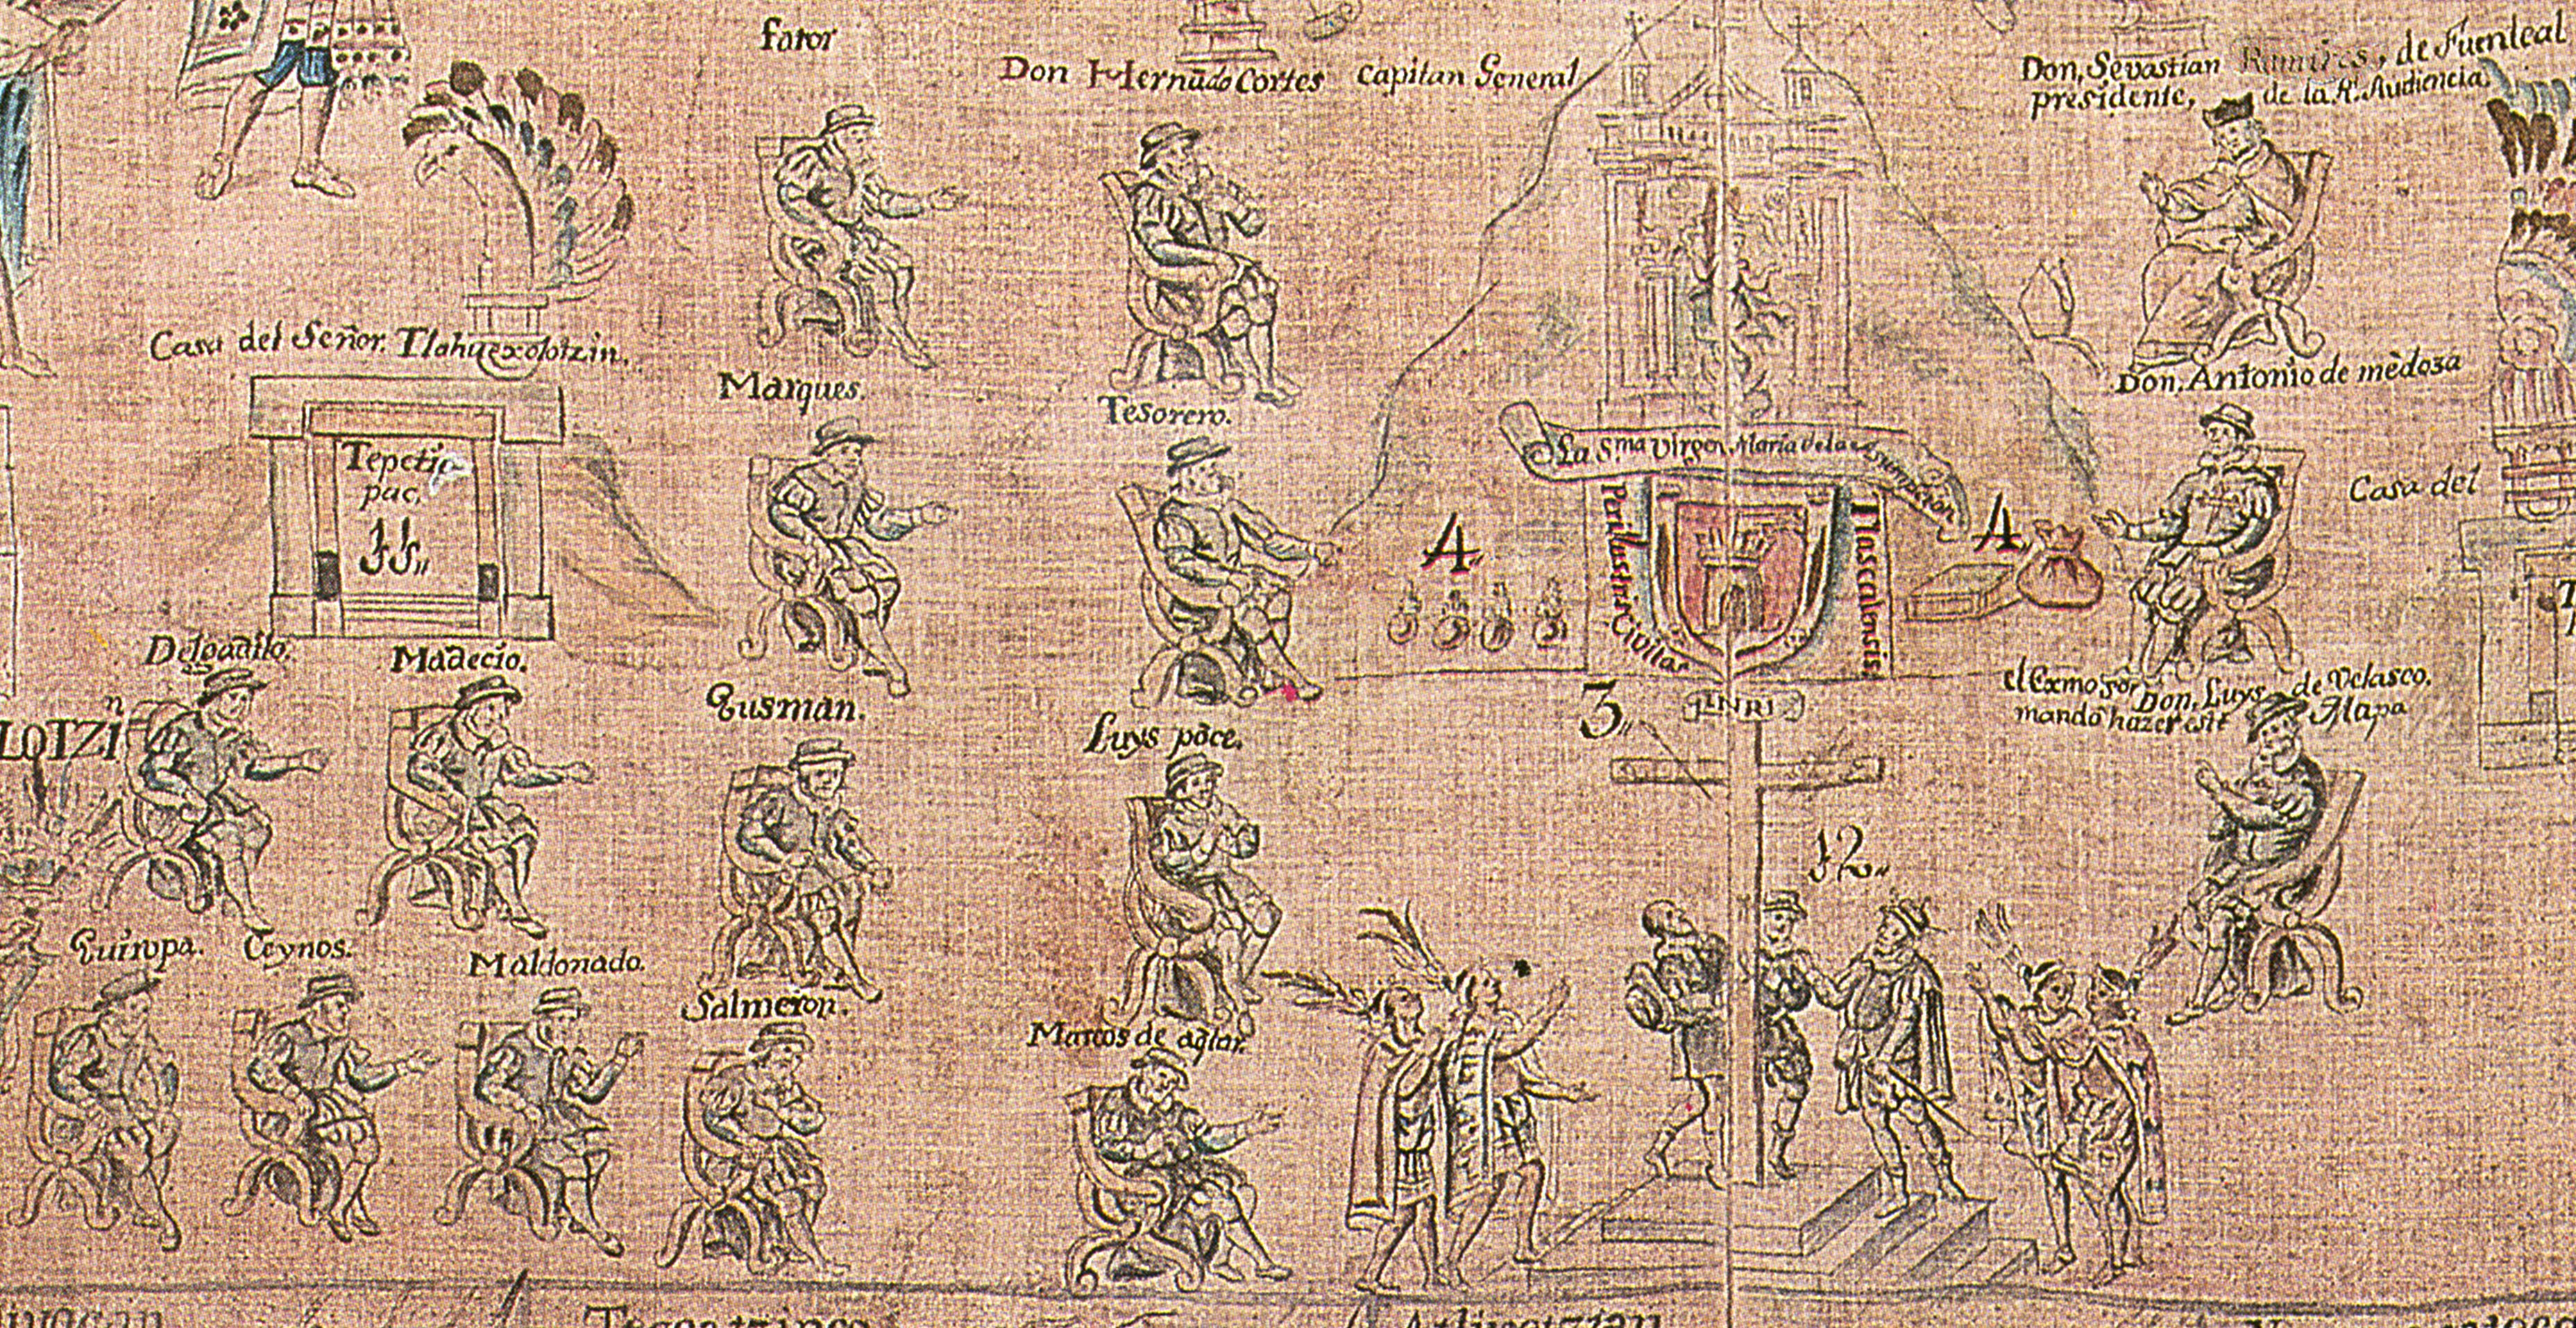 FIGURE 17. Detail of the Europeans in the center of the main scene of the 1773 copy Lienzo de Tlaxcala.